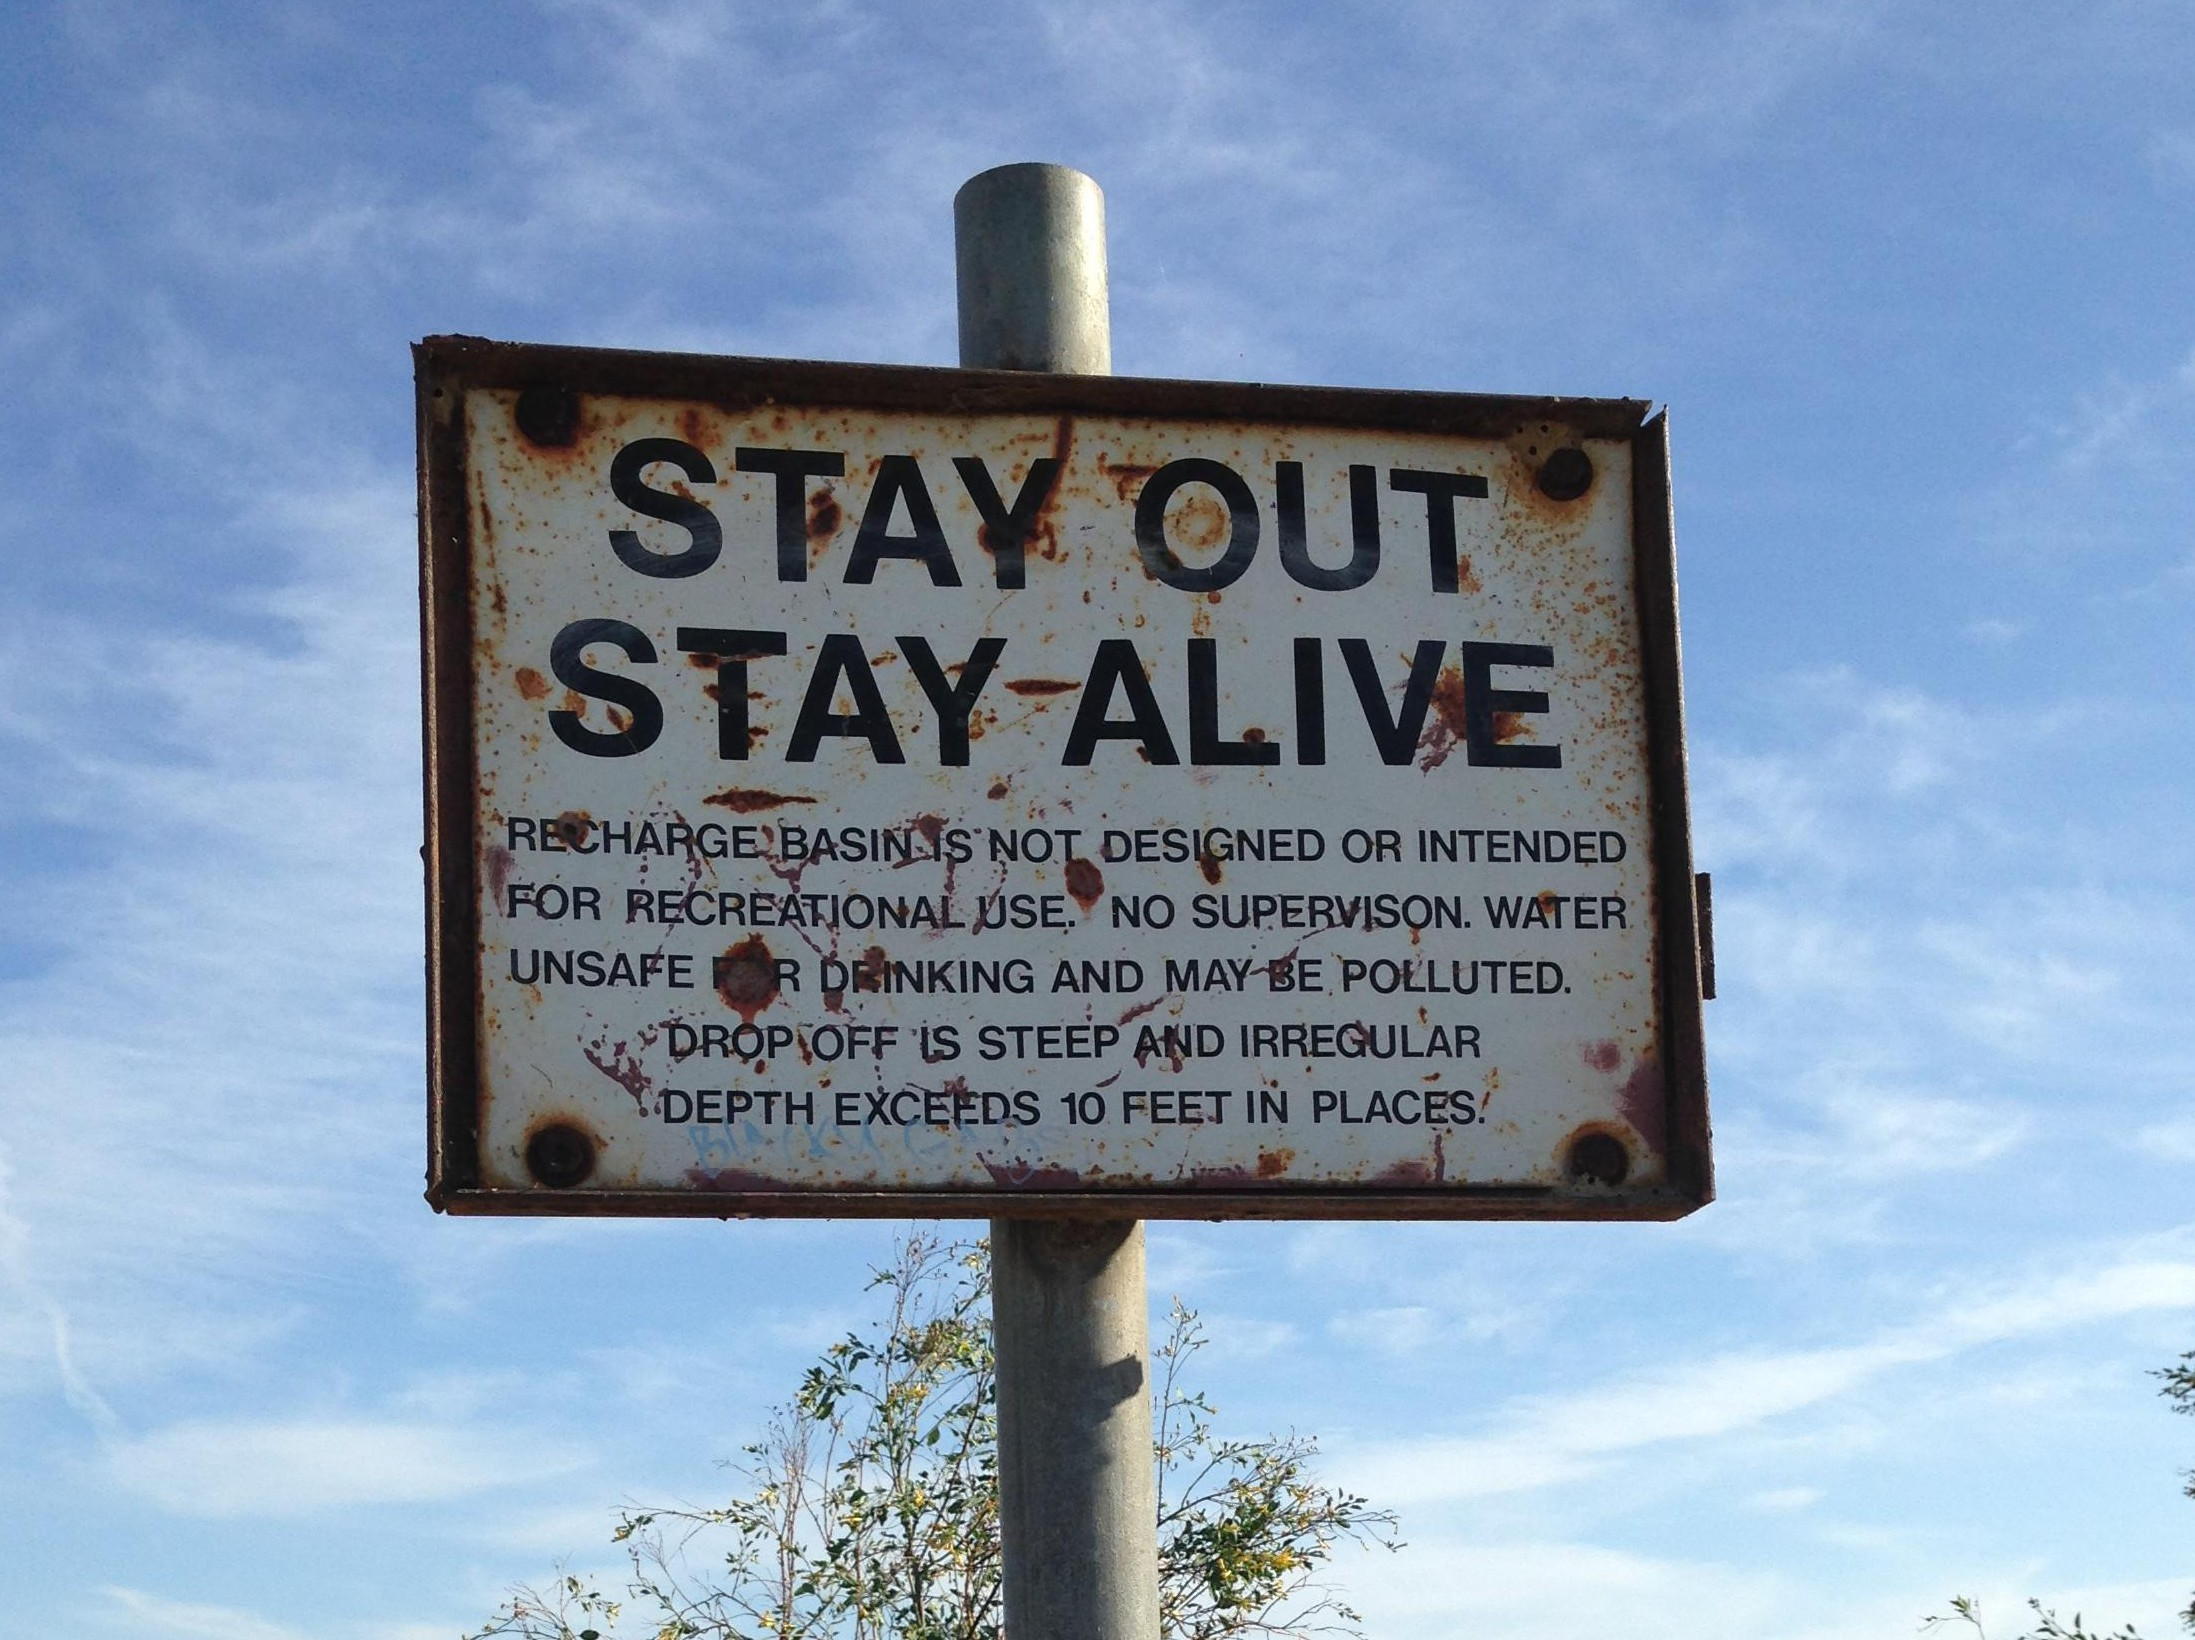 Stay out, stay alive